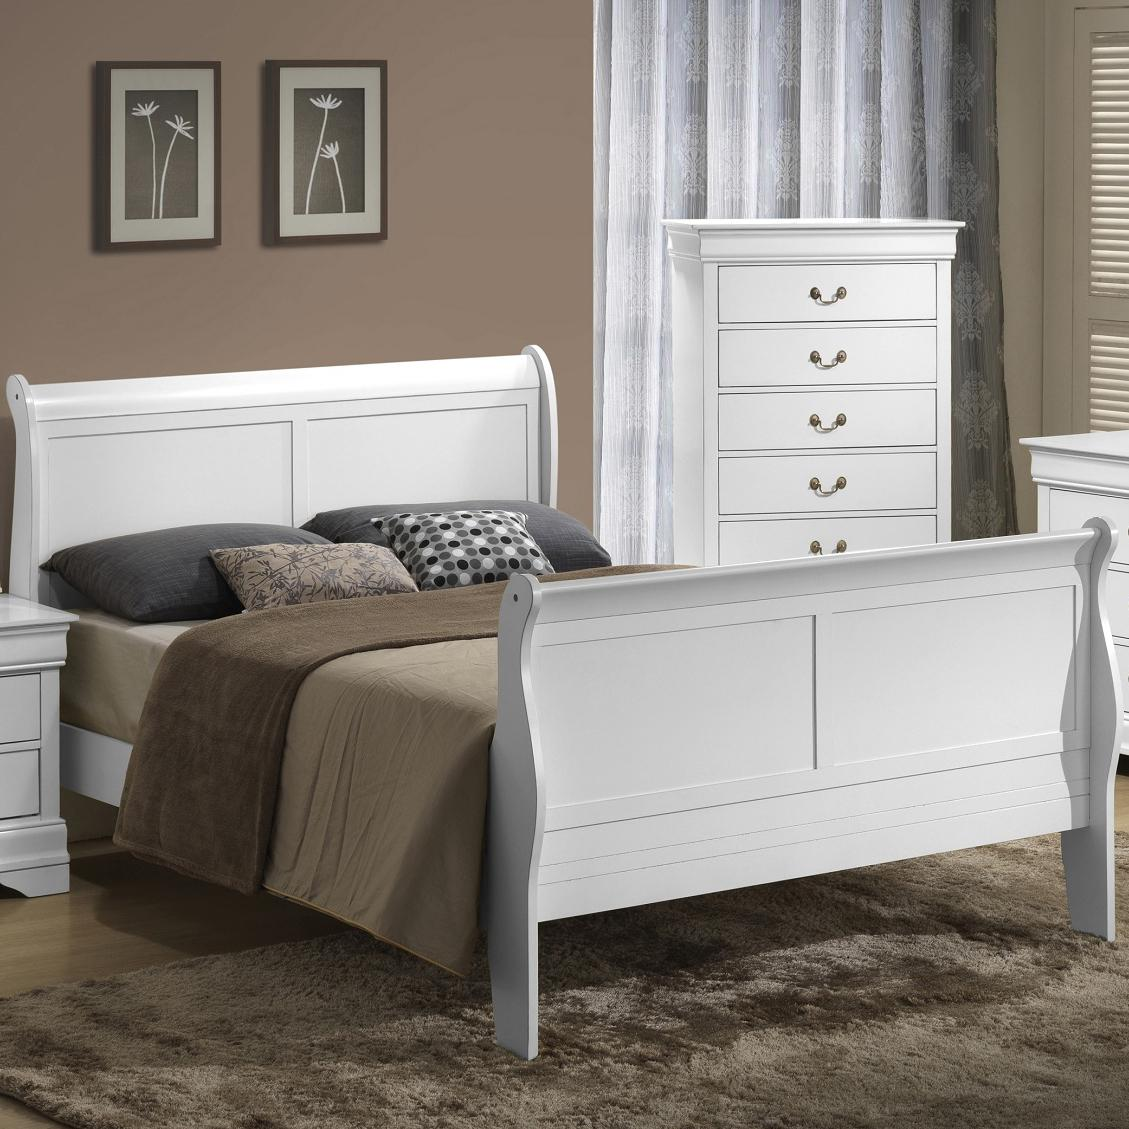 Lifestyle 5939 Full Sleigh Bed - Item Number: C5939A-FSA+FXP